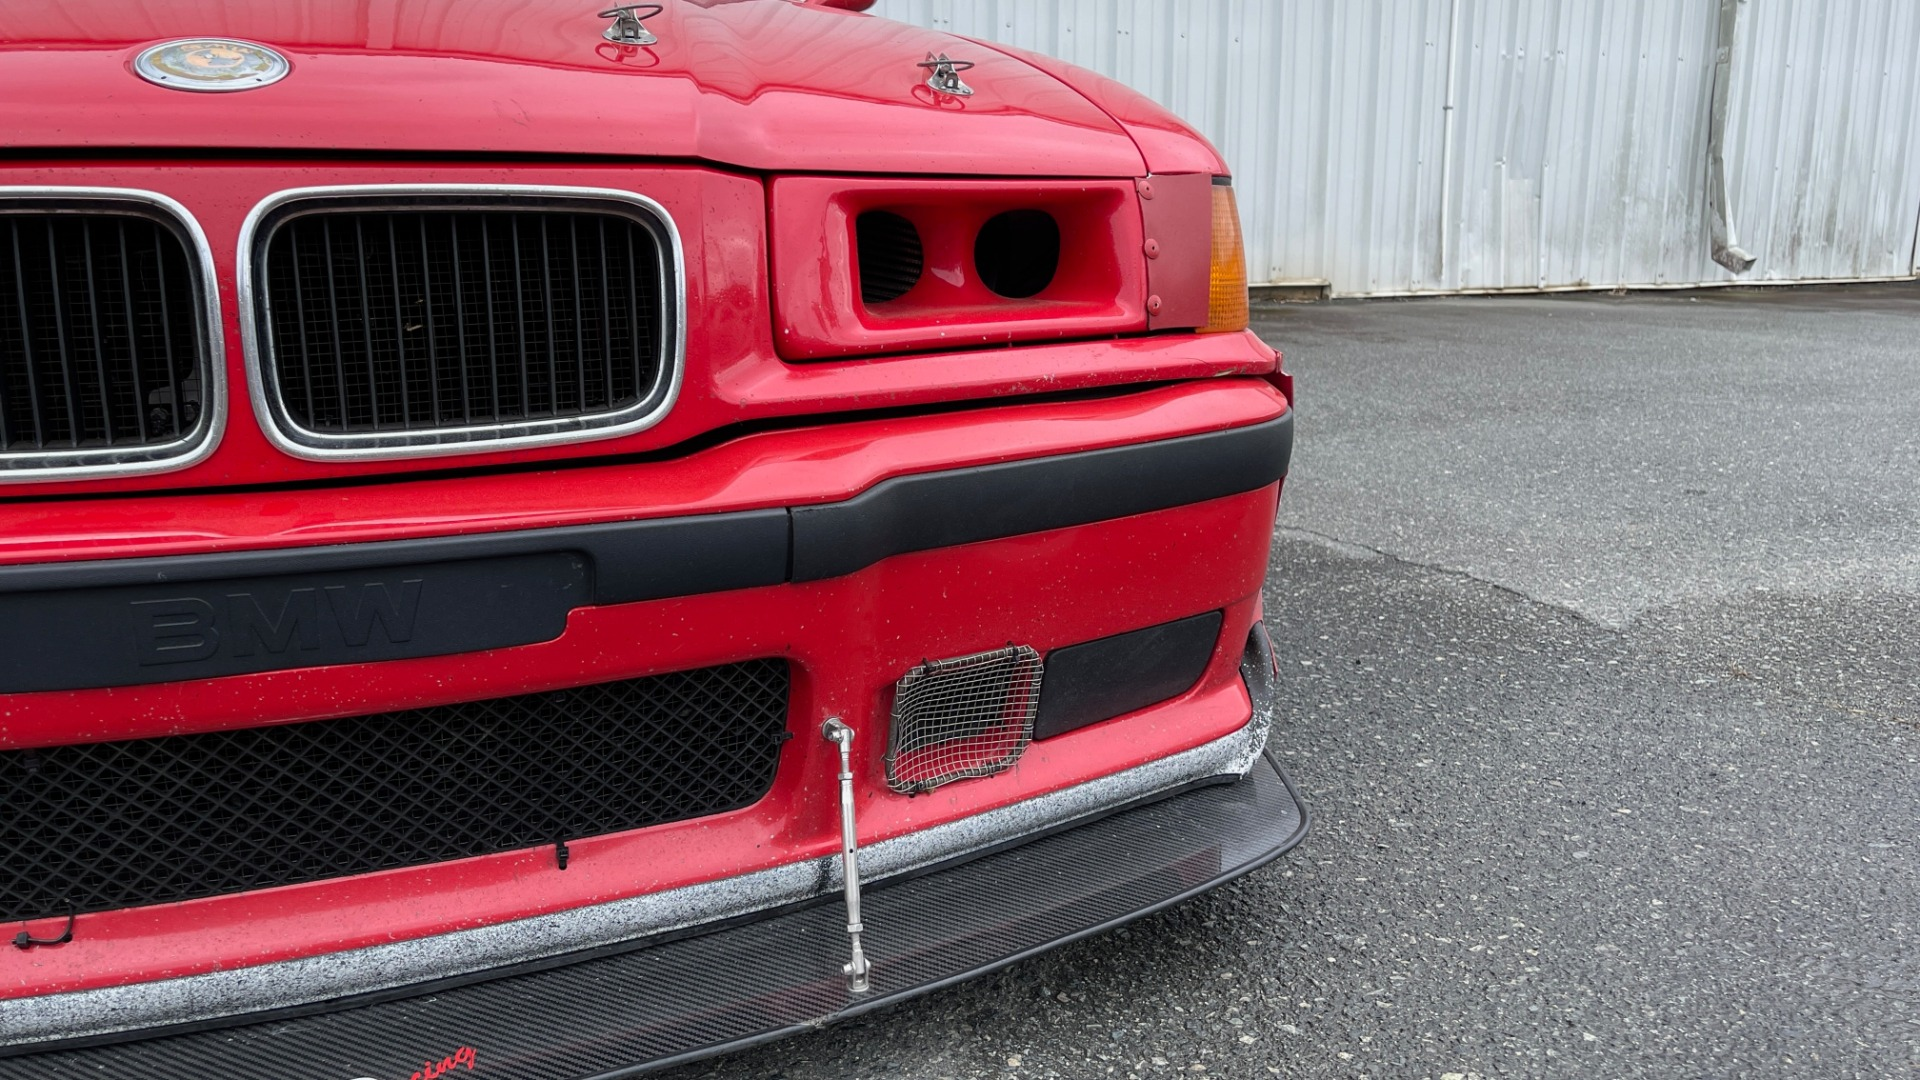 Used 1996 BMW 3-SERIES M3 TRACK CAR / 5-SPD / MANUAL / FULL CAGE / CARBON FIBER WING for sale $47,995 at Formula Imports in Charlotte NC 28227 23